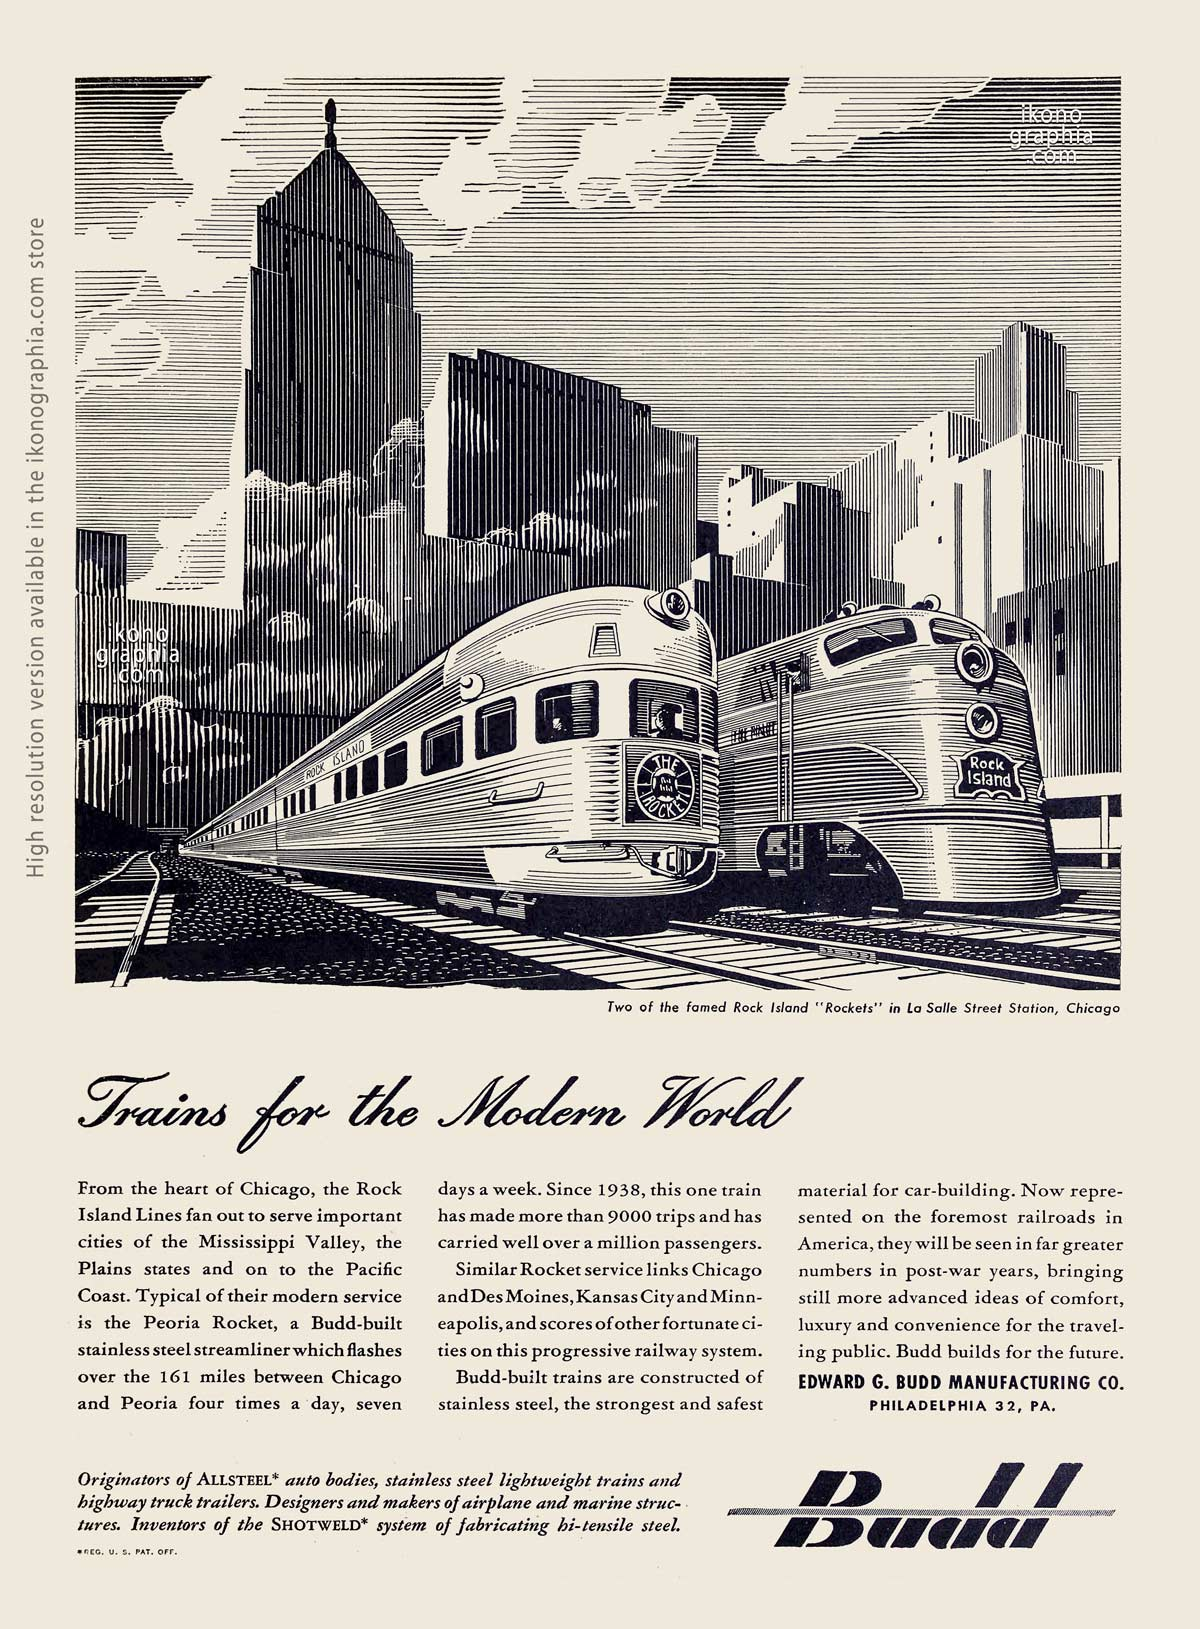 Trains for the Modern World. Budd ad - Nation's Business. September 1944